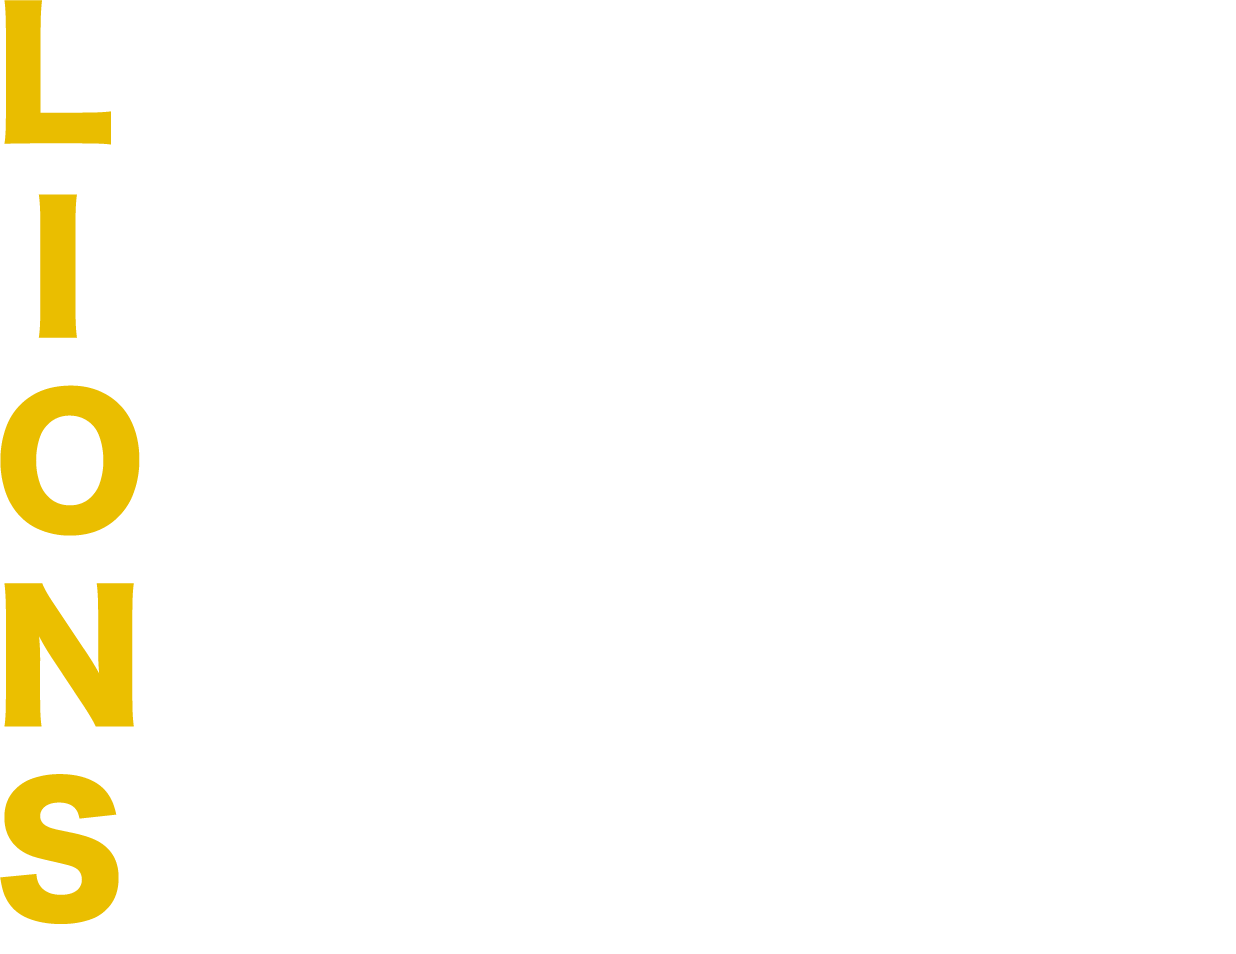 Liberty Intelligence Our Nation's Safety